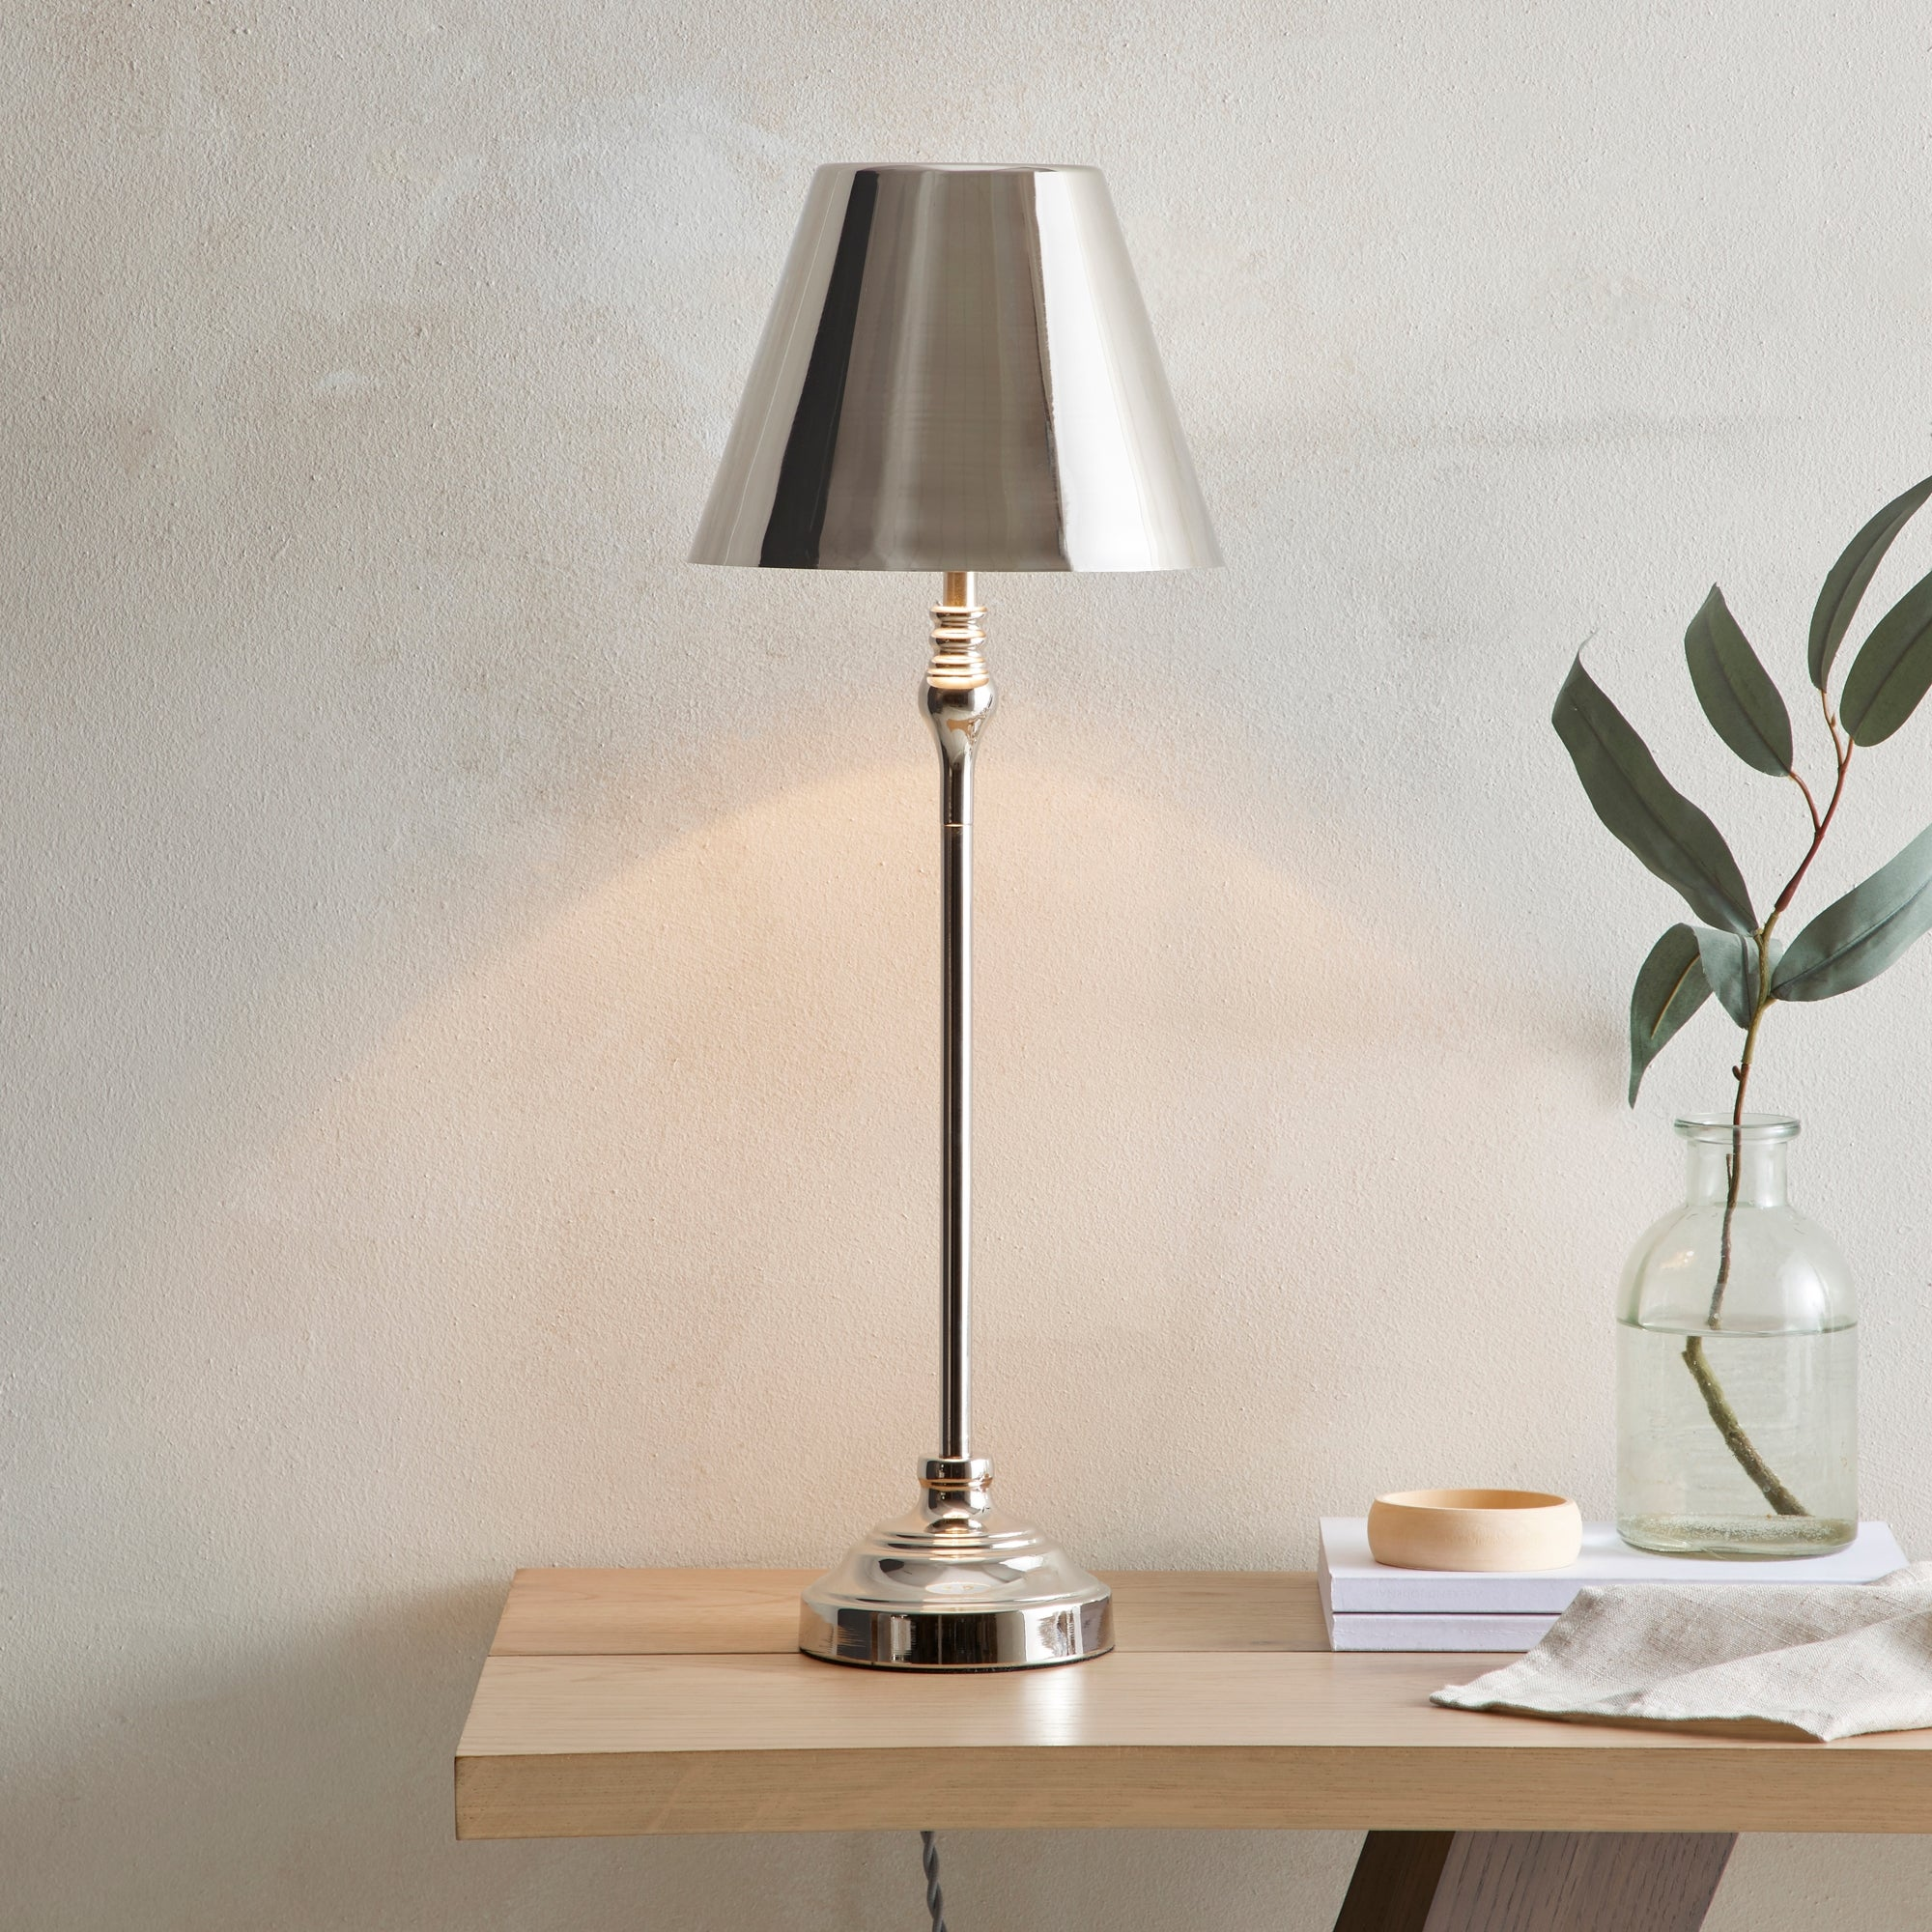 Dorma Bedford Table Lamp Polished Nickel Silver and Grey